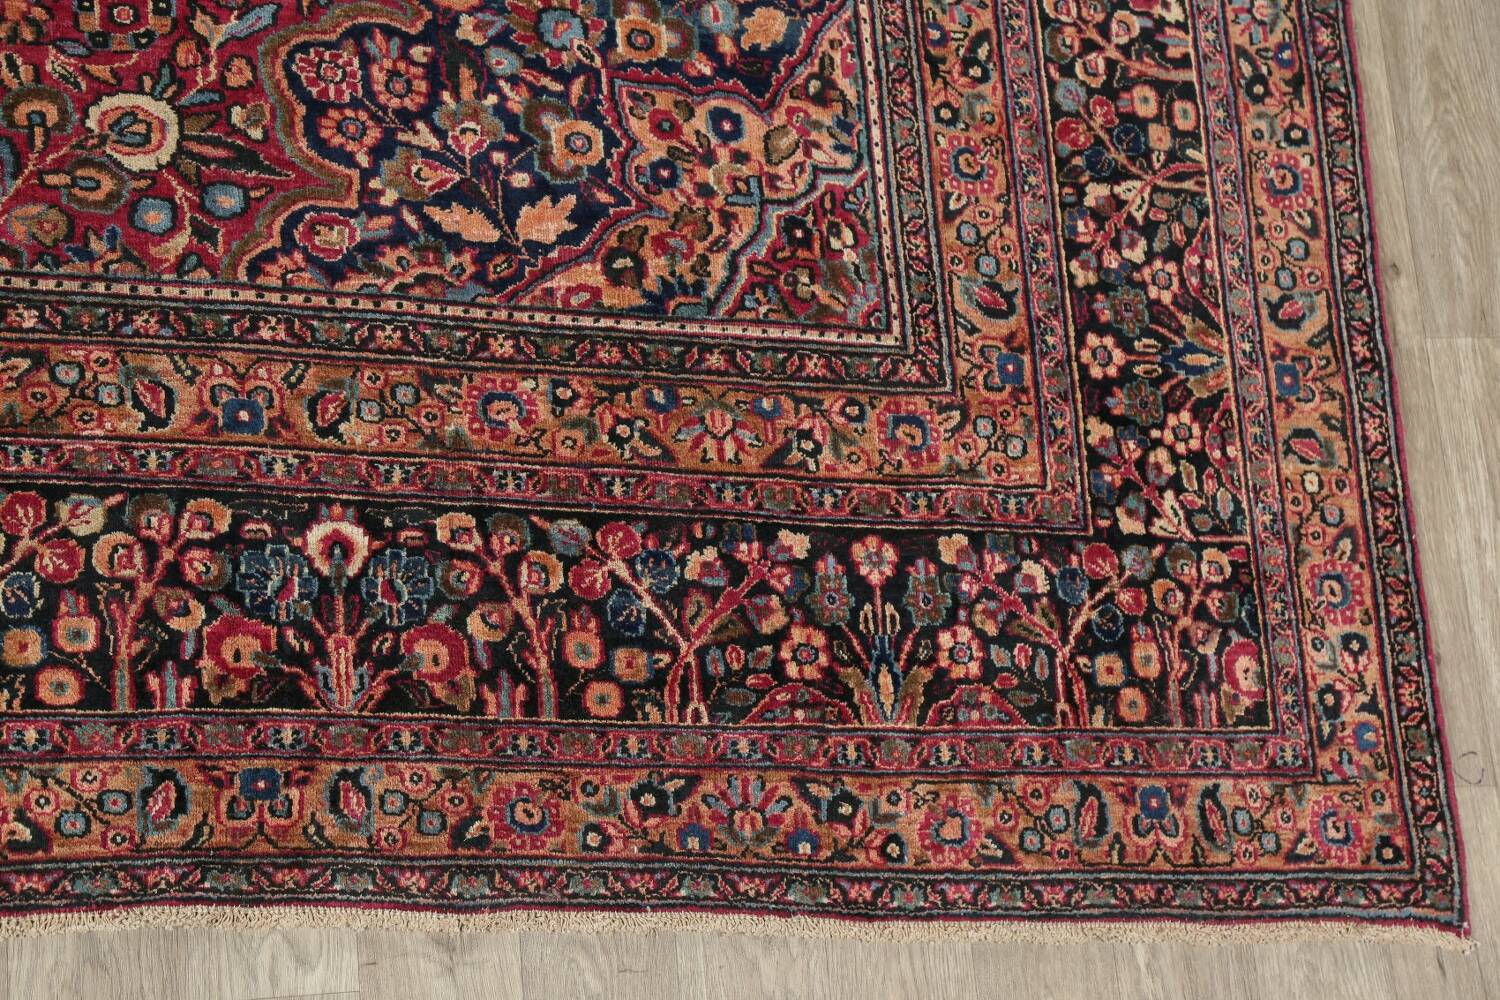 Antique Floral Red Dorokhsh Persian Rug Large 11x14 image 5